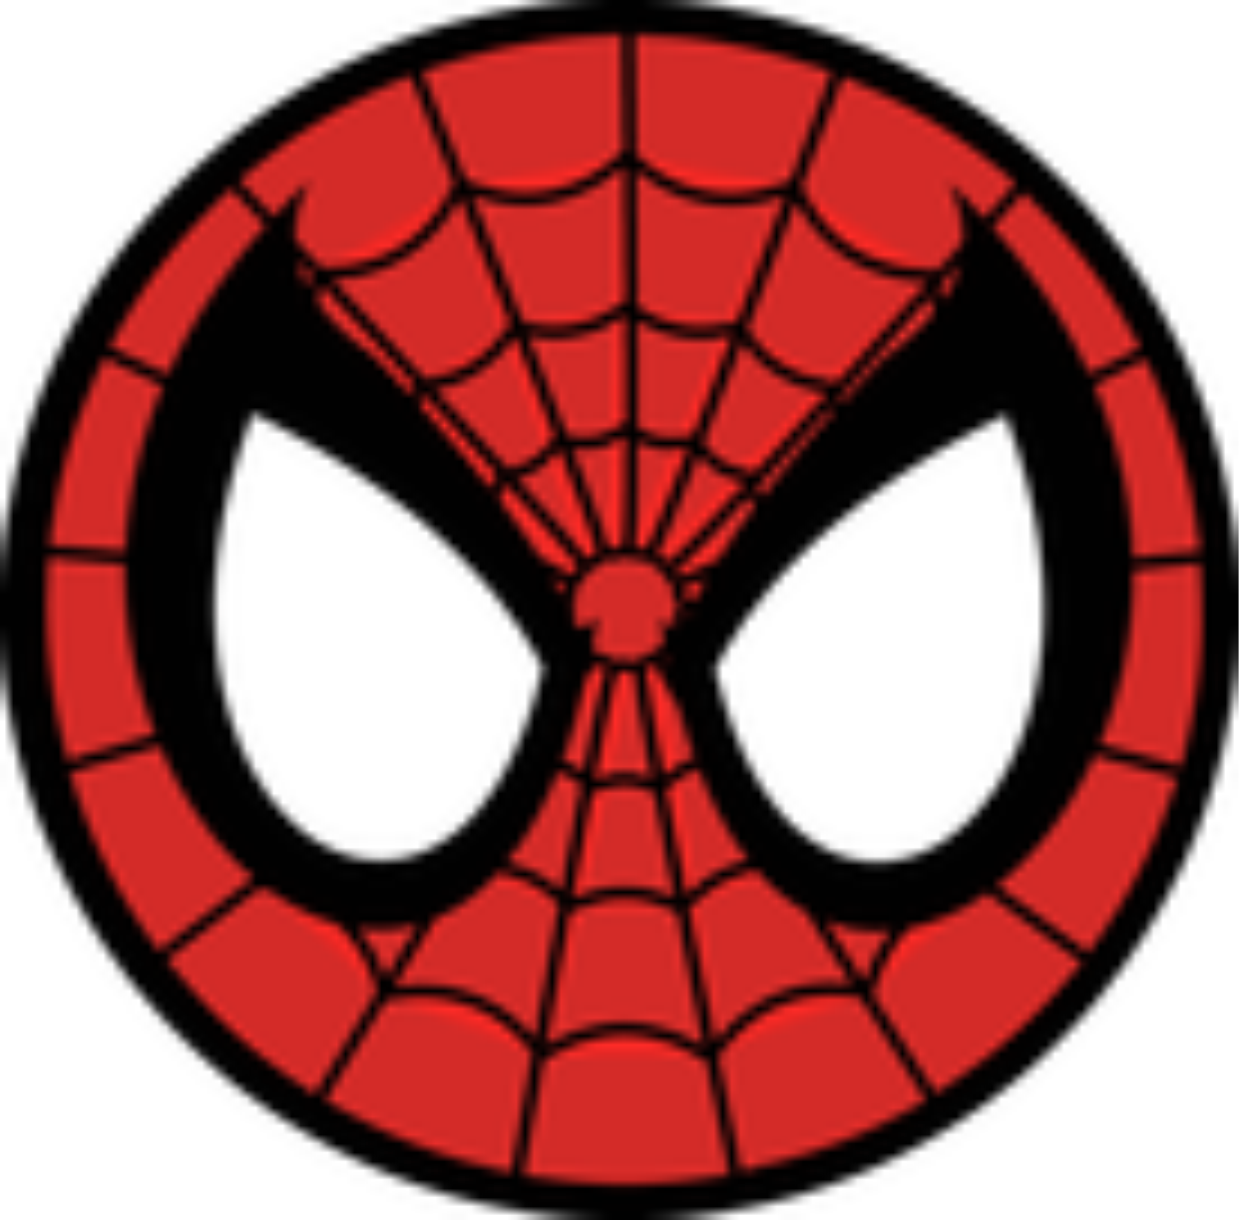 Symmetry Area Spiderman Hulk Iron Man PNG Image